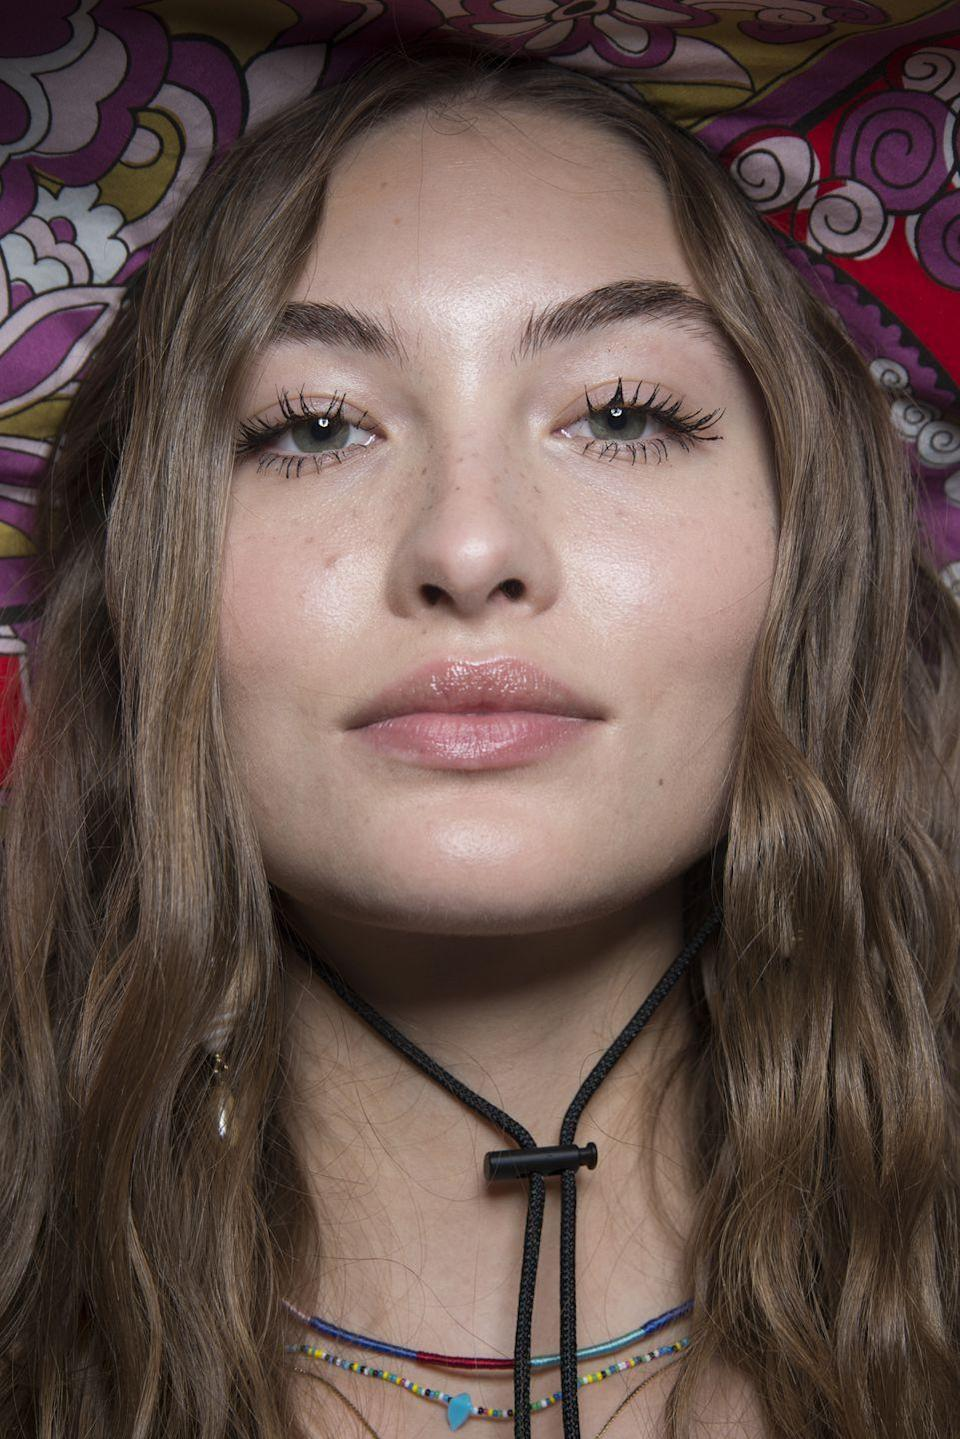 <p>Spidery graphic eyelashes with no other makeup looked perfectly retro yet also 2019-ready backstage at Etro.</p>